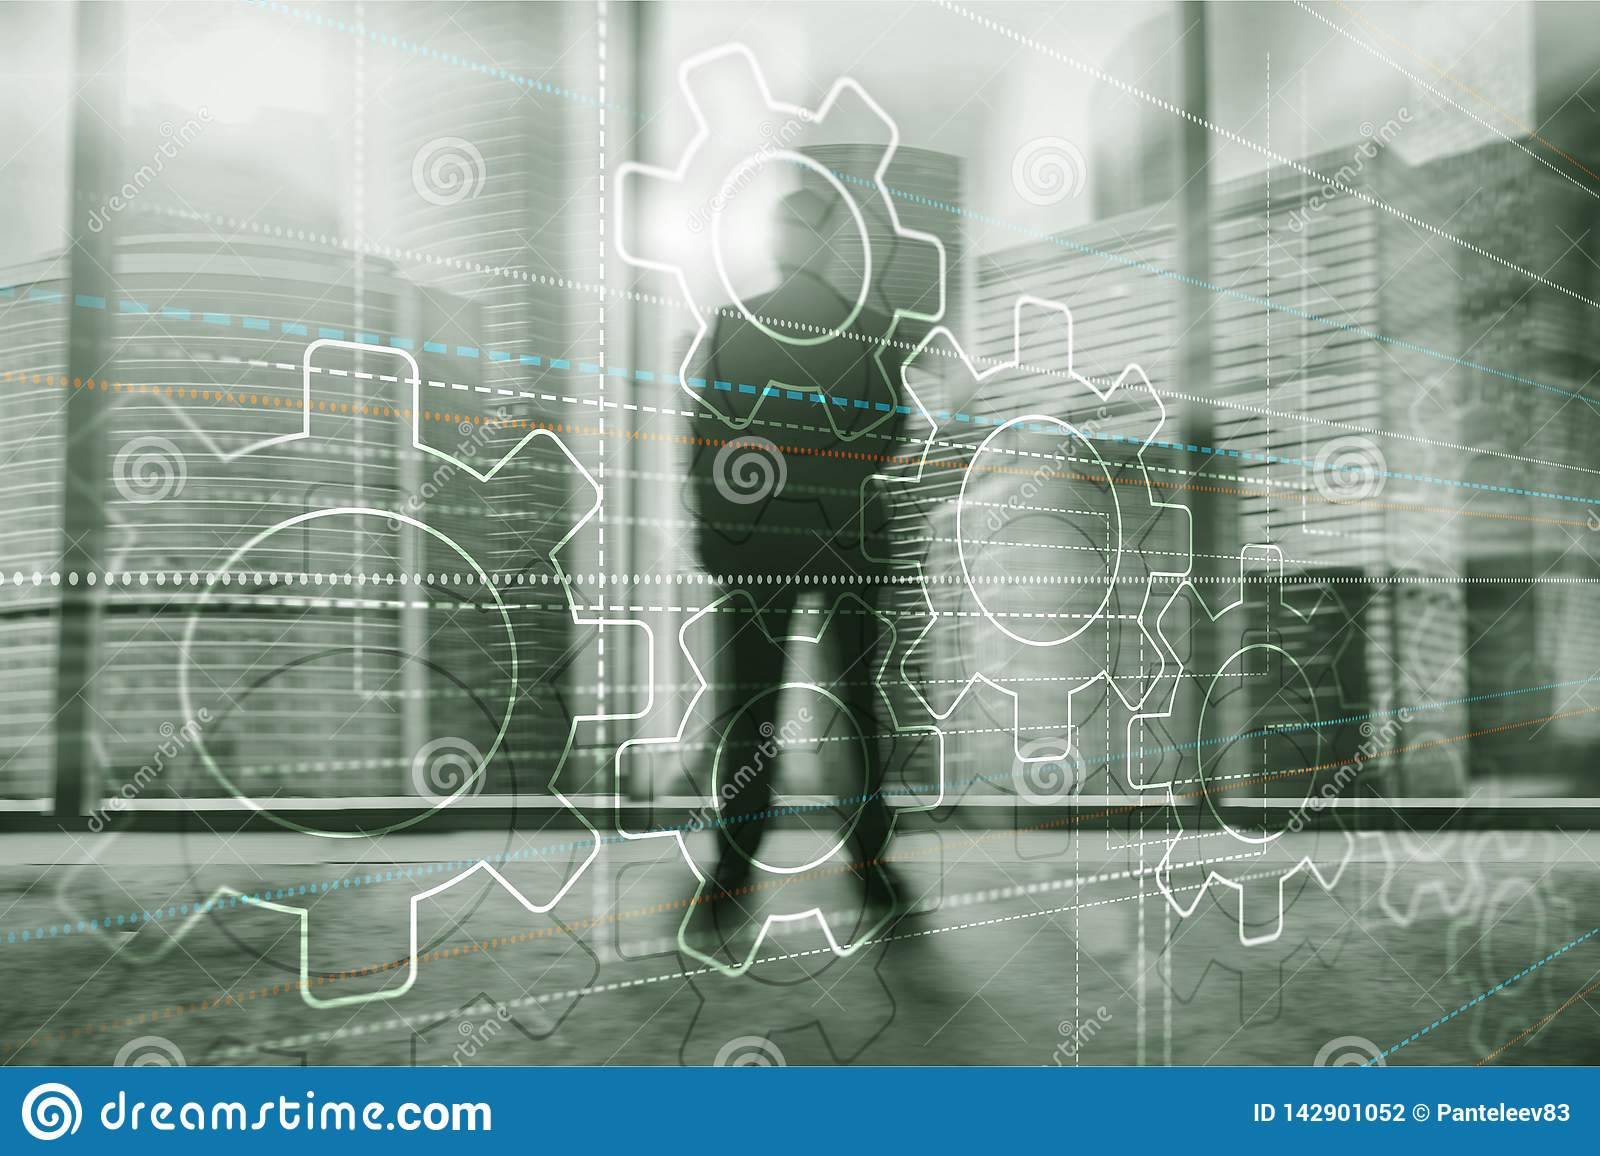 Abstract background gears concept. Silhouettes of business people on city background. Universal Technology Wallpaper